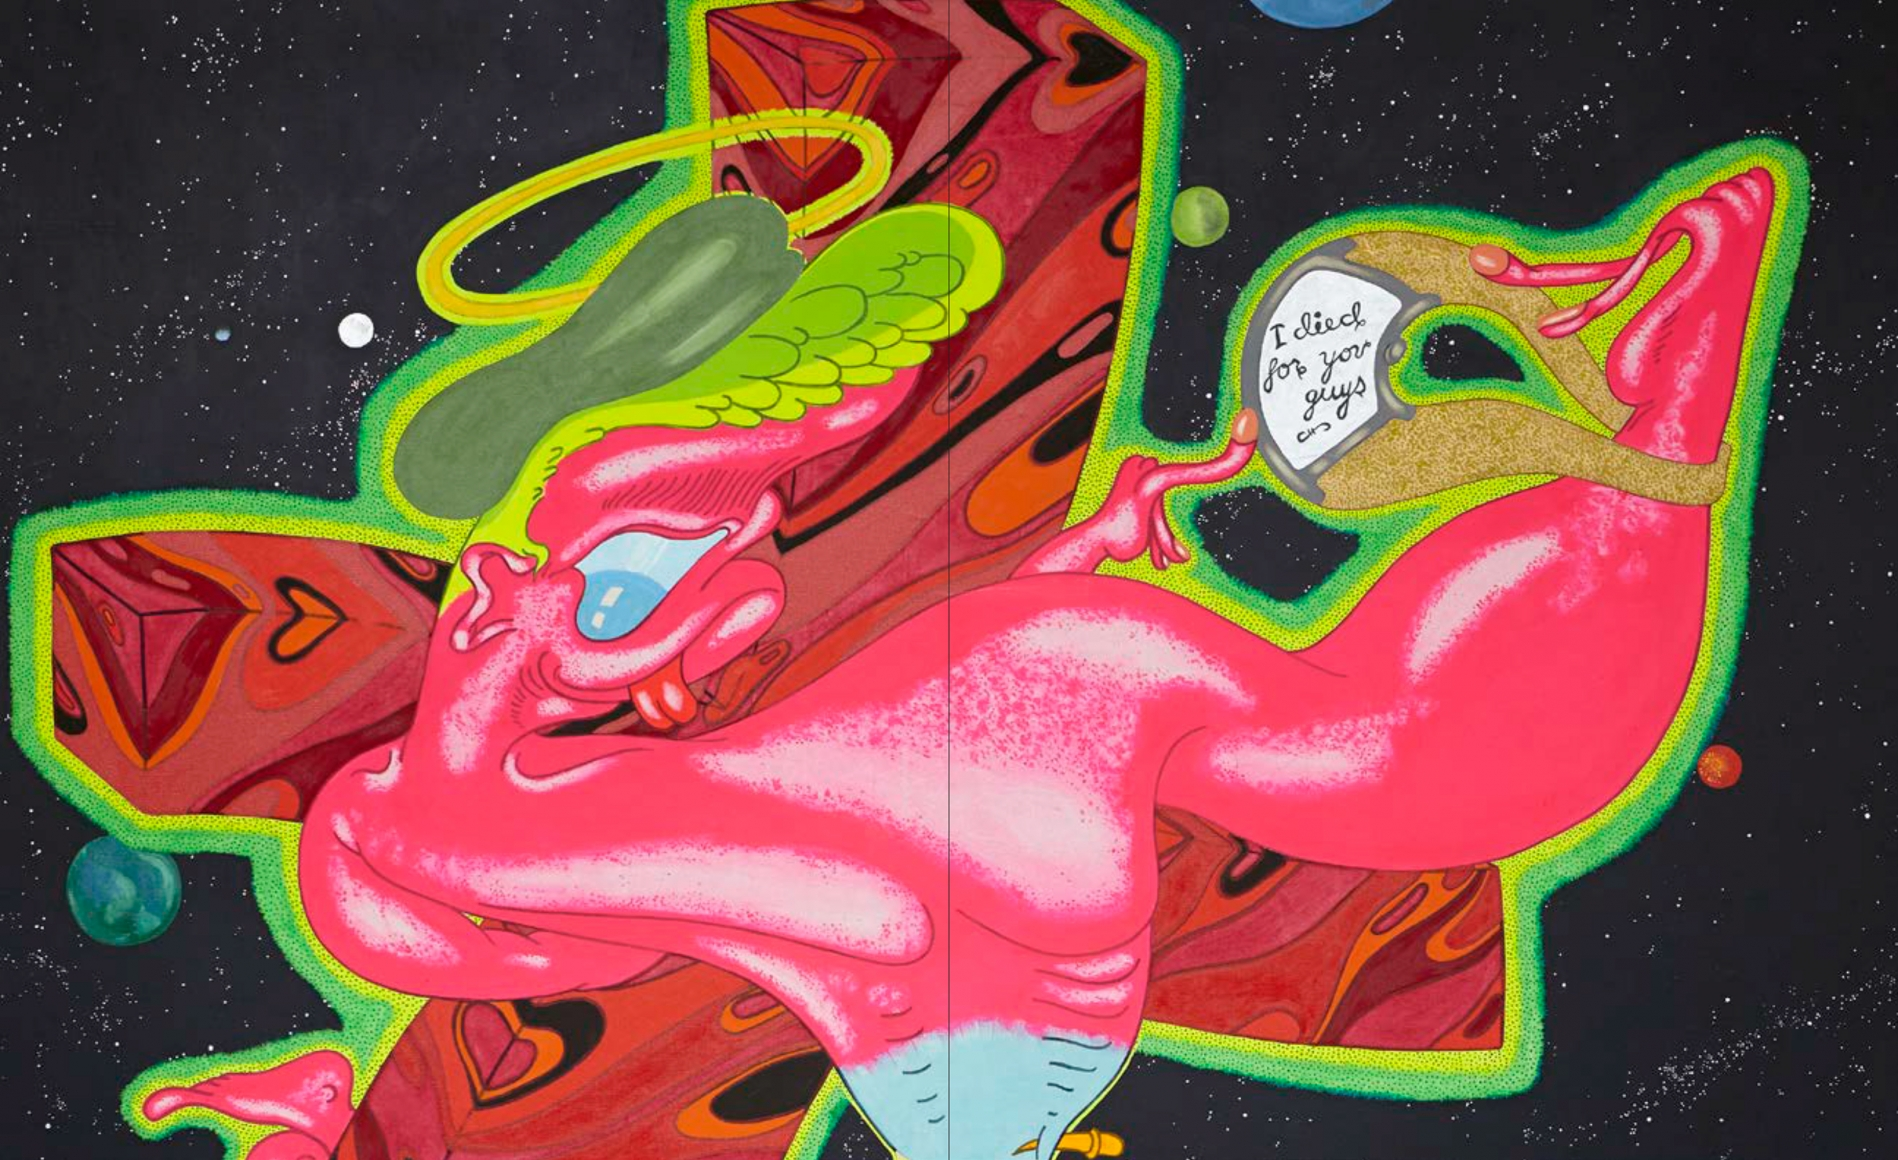 Interior view of Peter Saul: From Pop to Punk, published by Venus Over Manhattan, New York, 2015